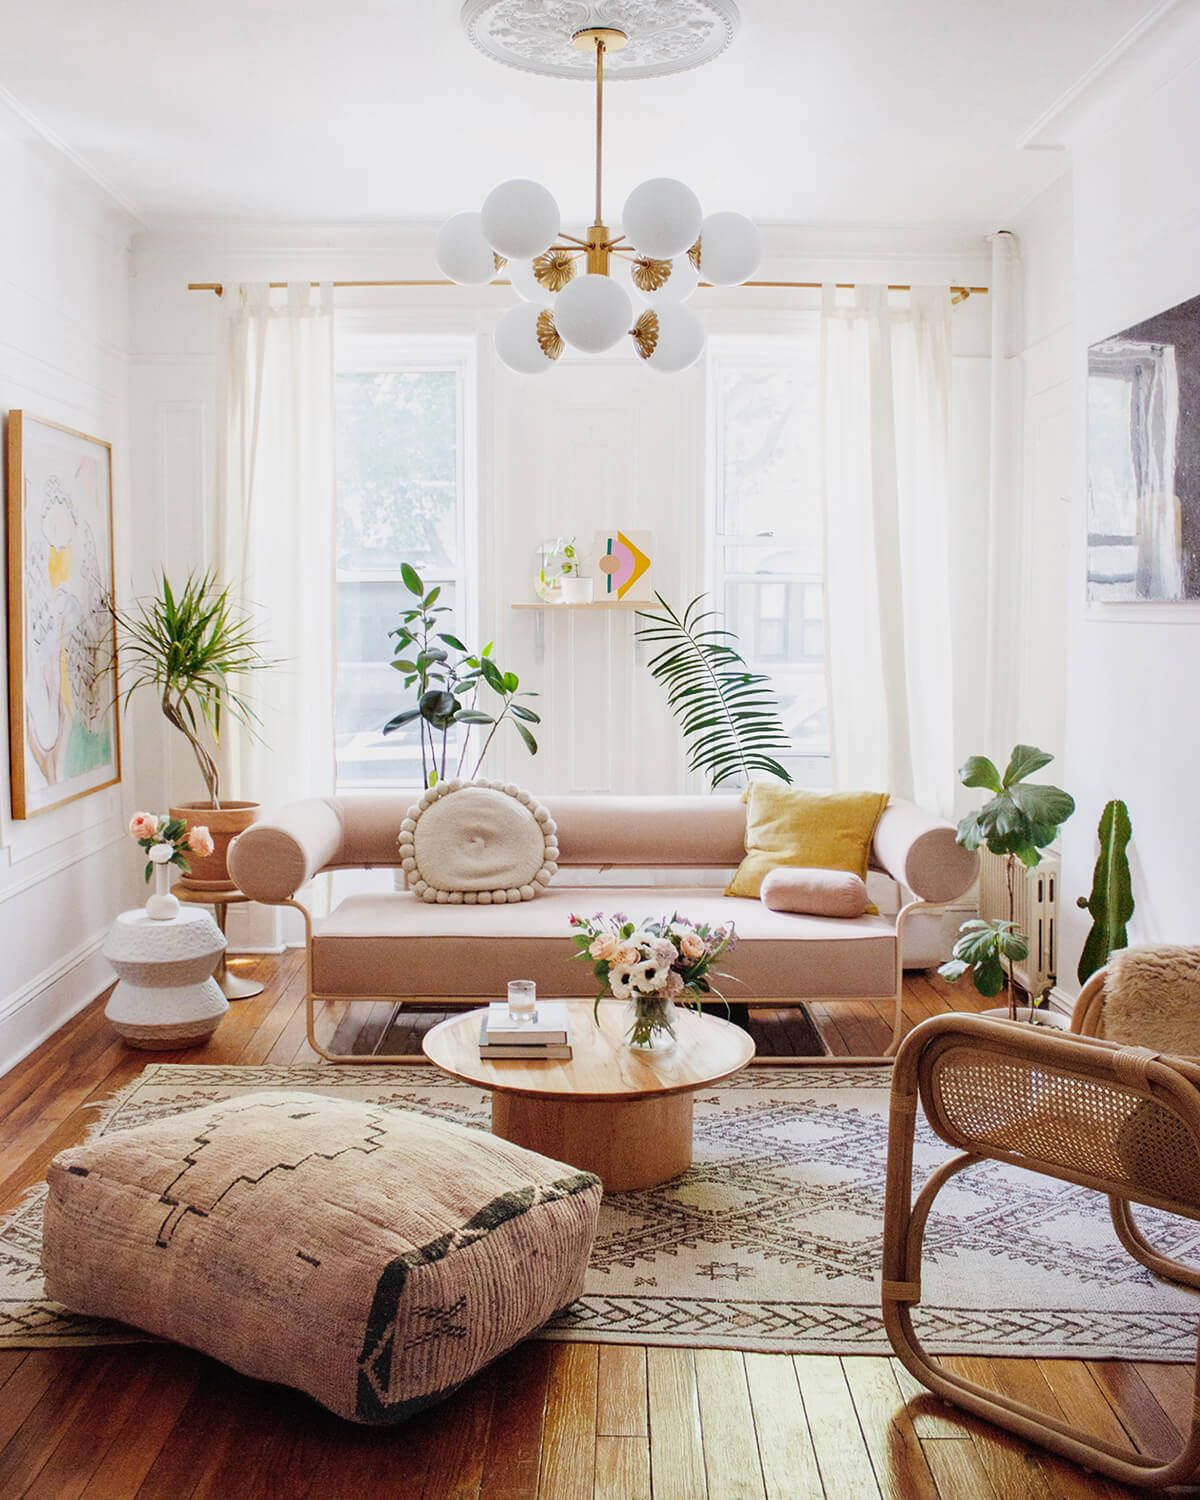 55 Simple Decorating Ideas For Small Living Room 2021 Living Room Decor Apartment Apartment Living Room Design Small Apartment Living Room Design